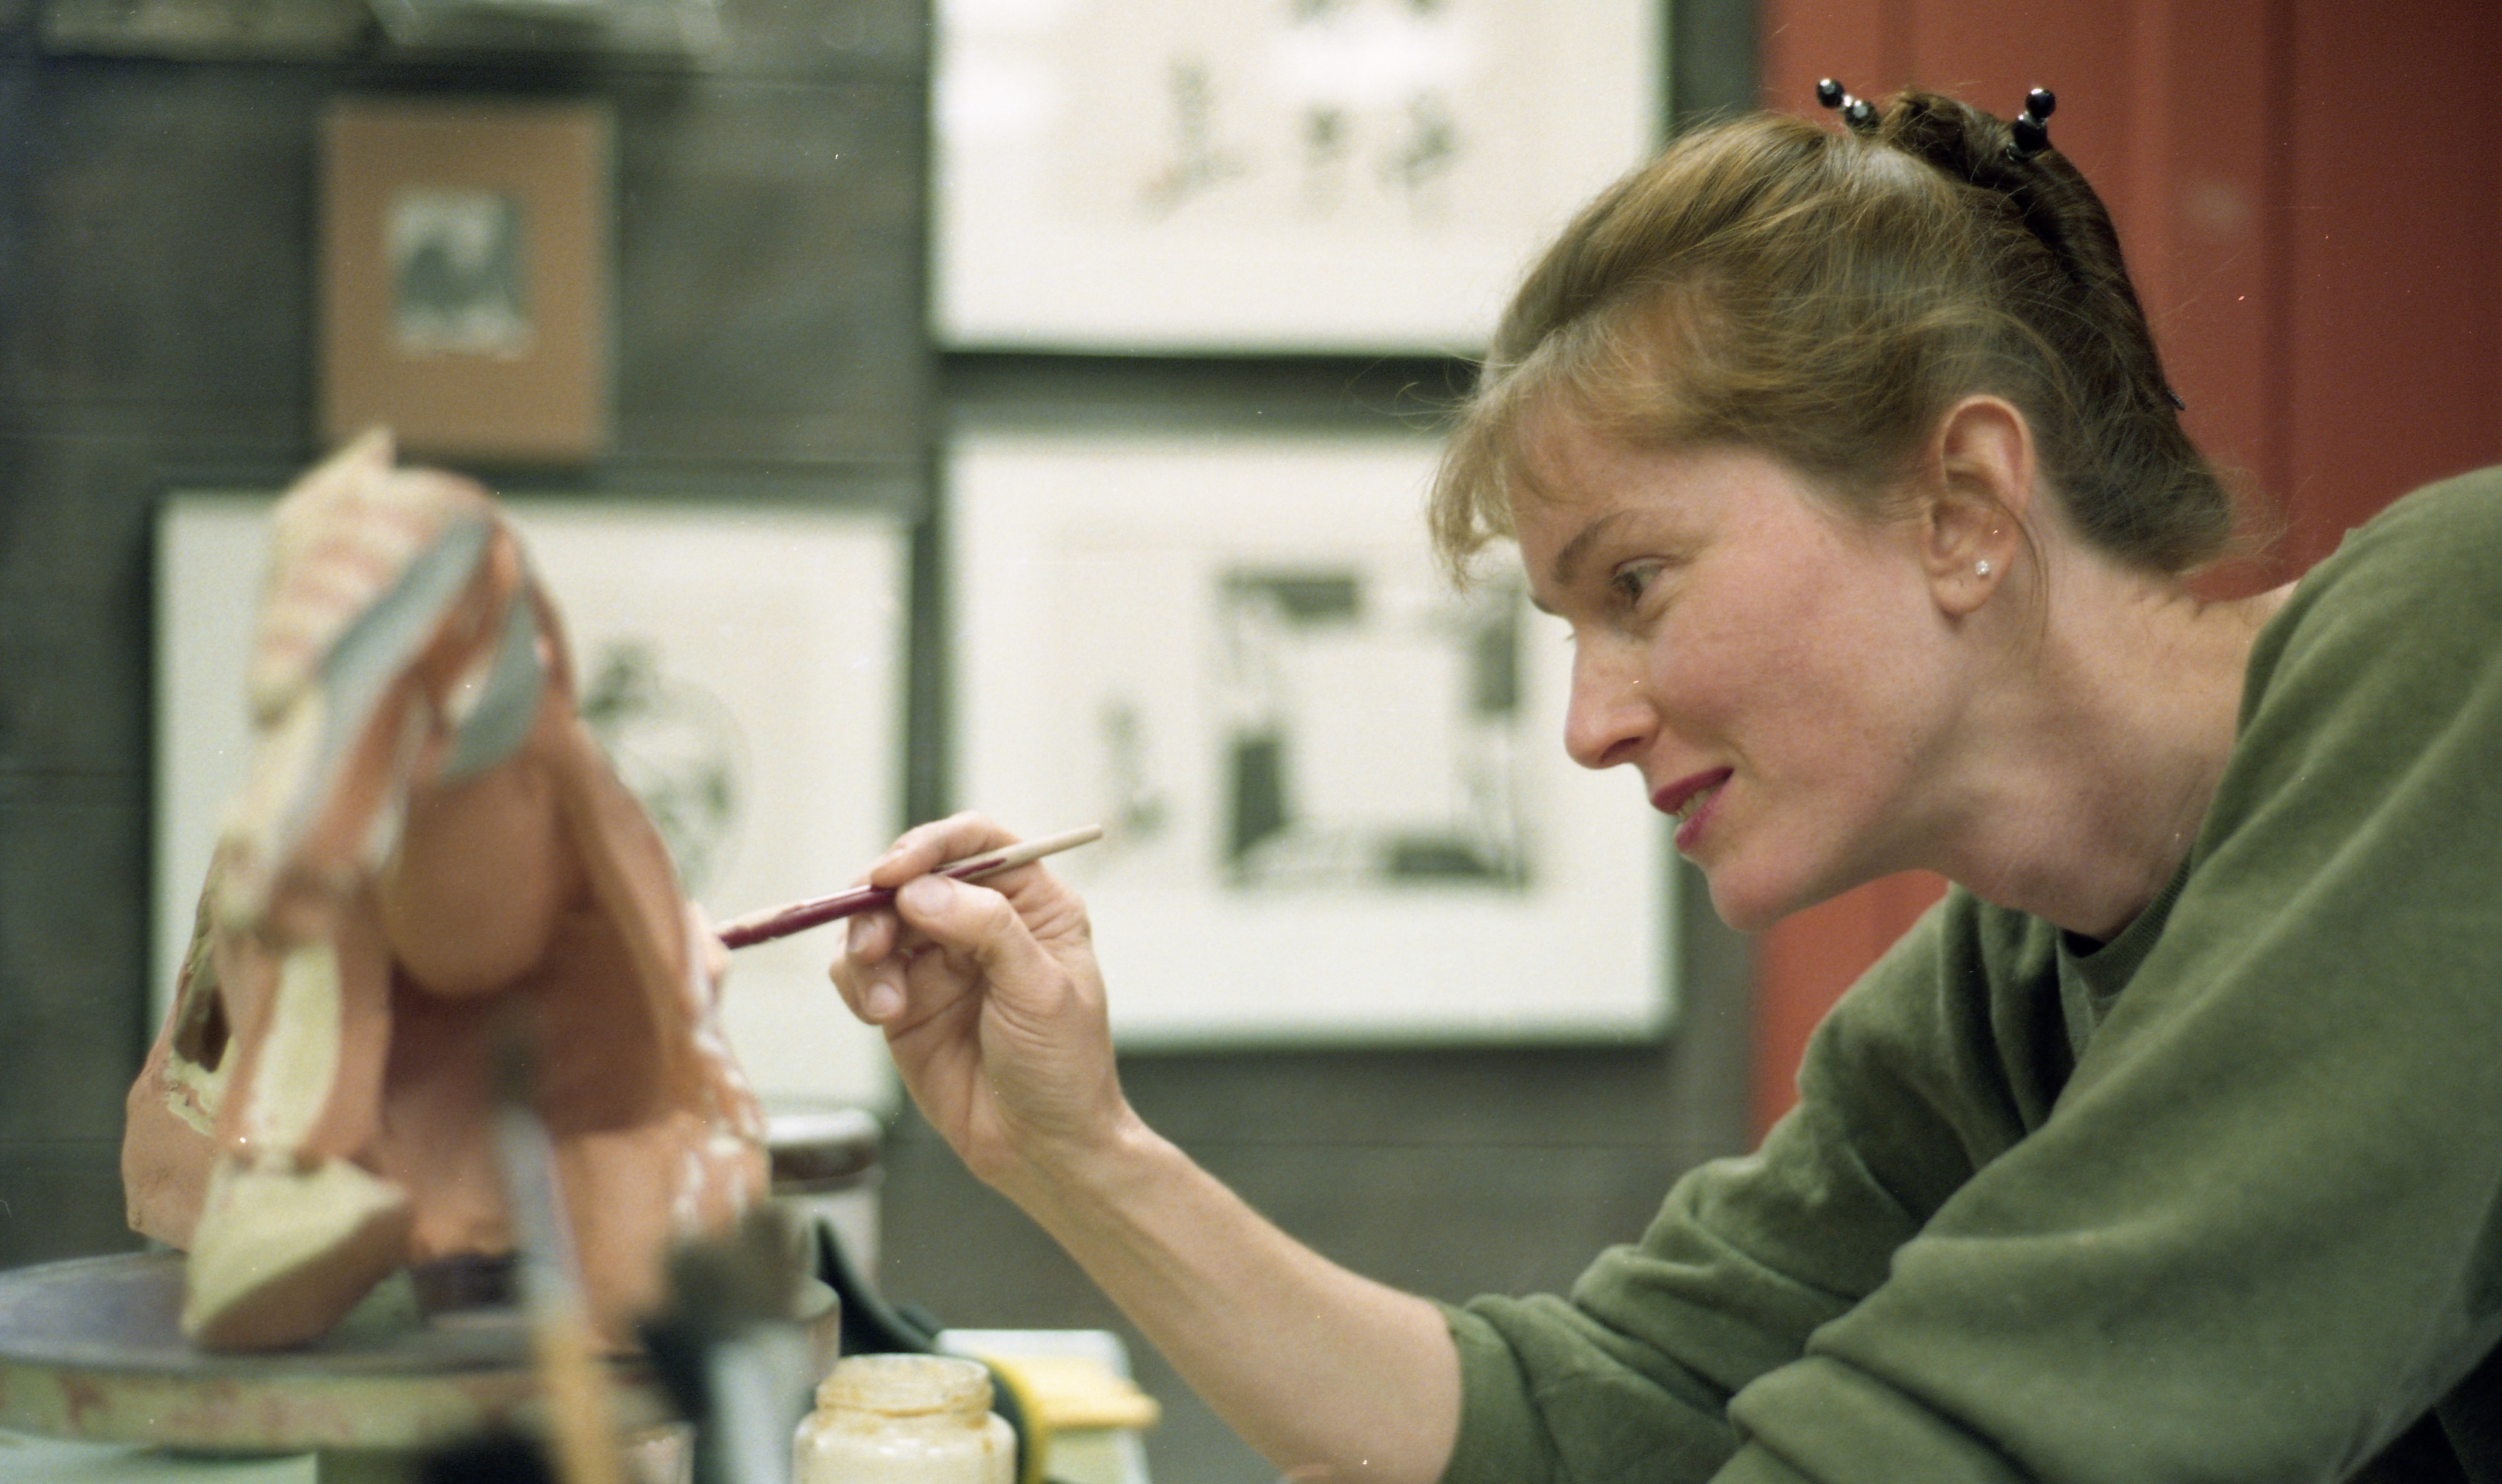 Jeri Hollister Works On A Sculpture At The Ann Arbor Potters Guild, November 1994 image